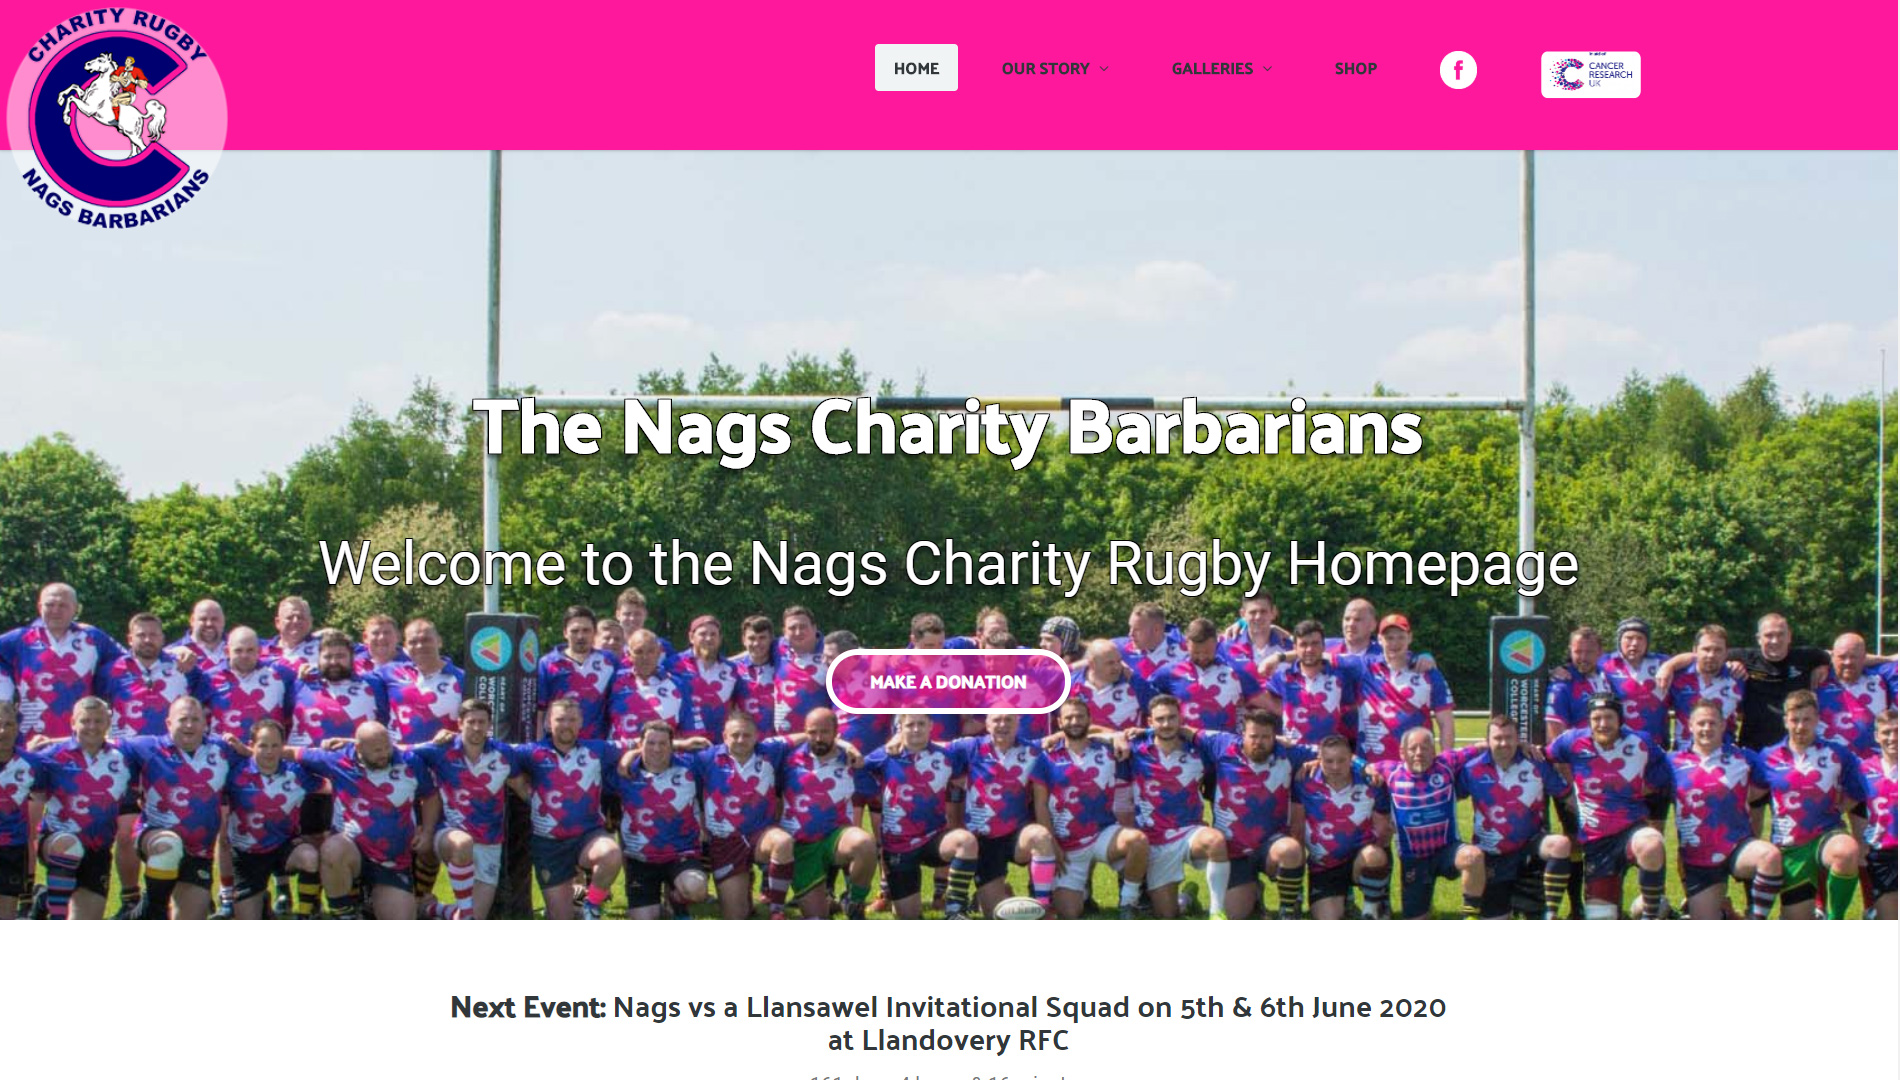 The Nags Charity Barbarians